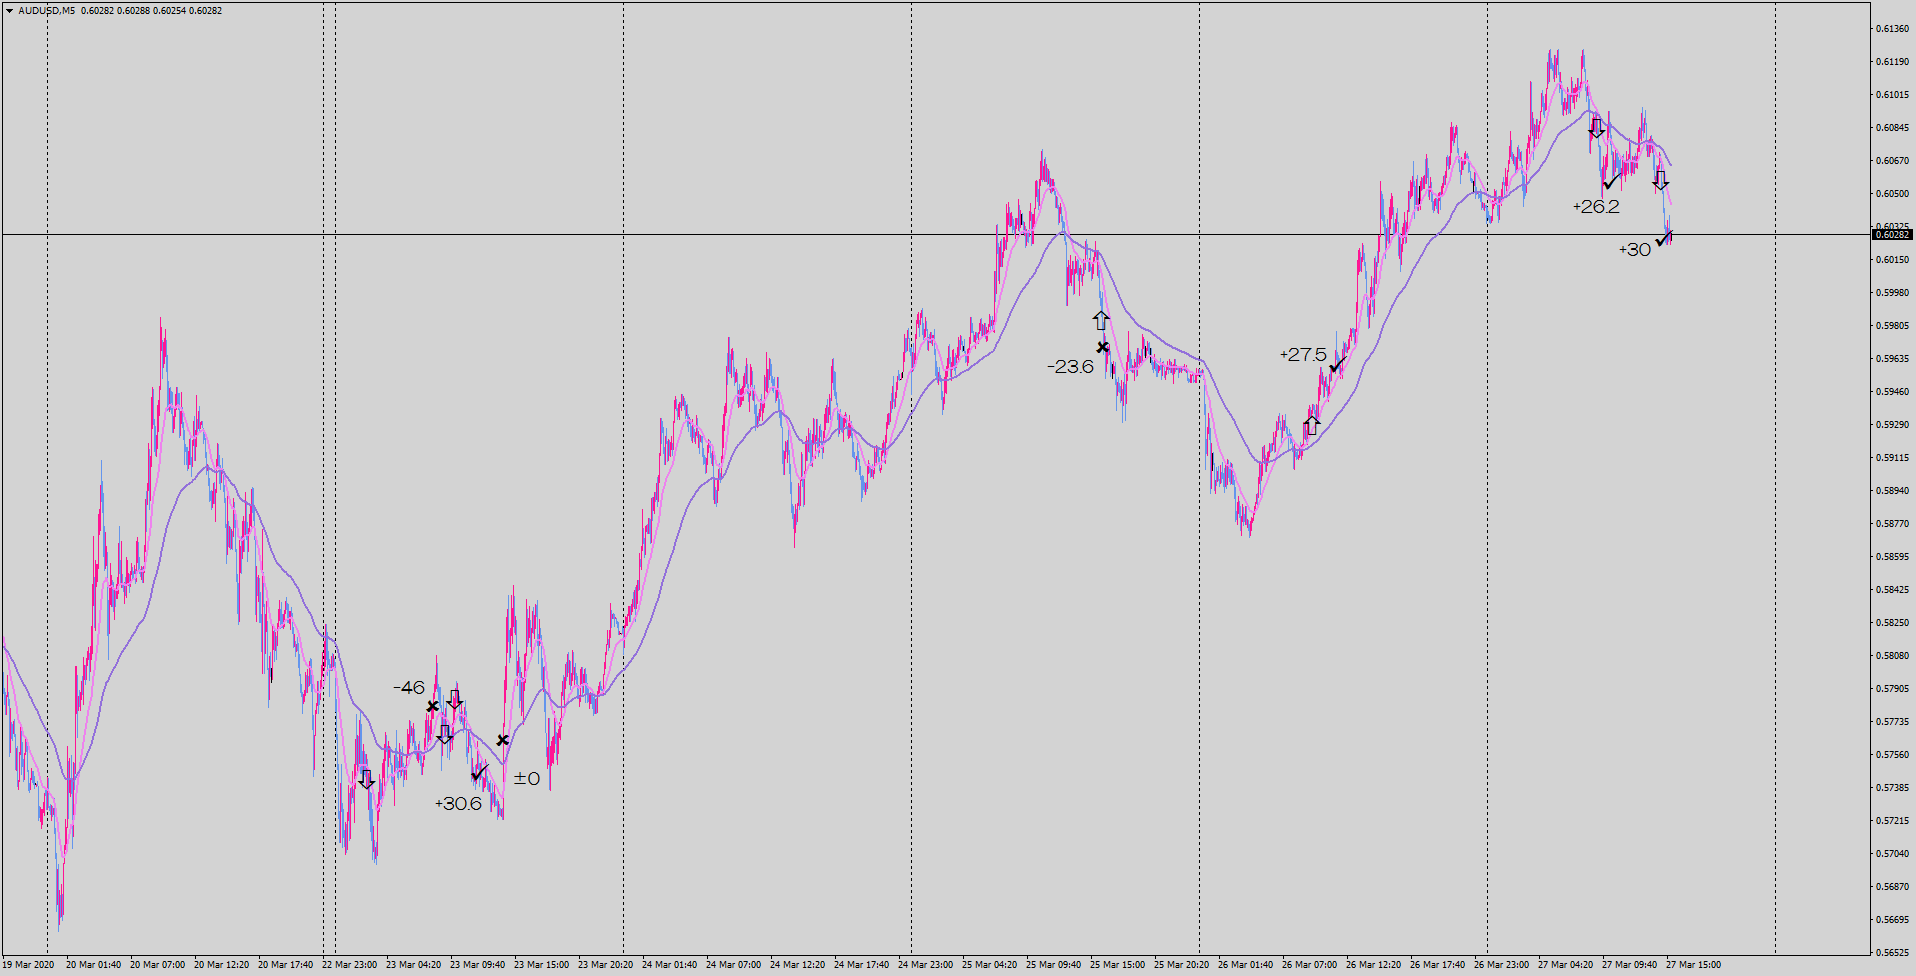 20-03-27-audusd-m5-tradexfin-limited.png